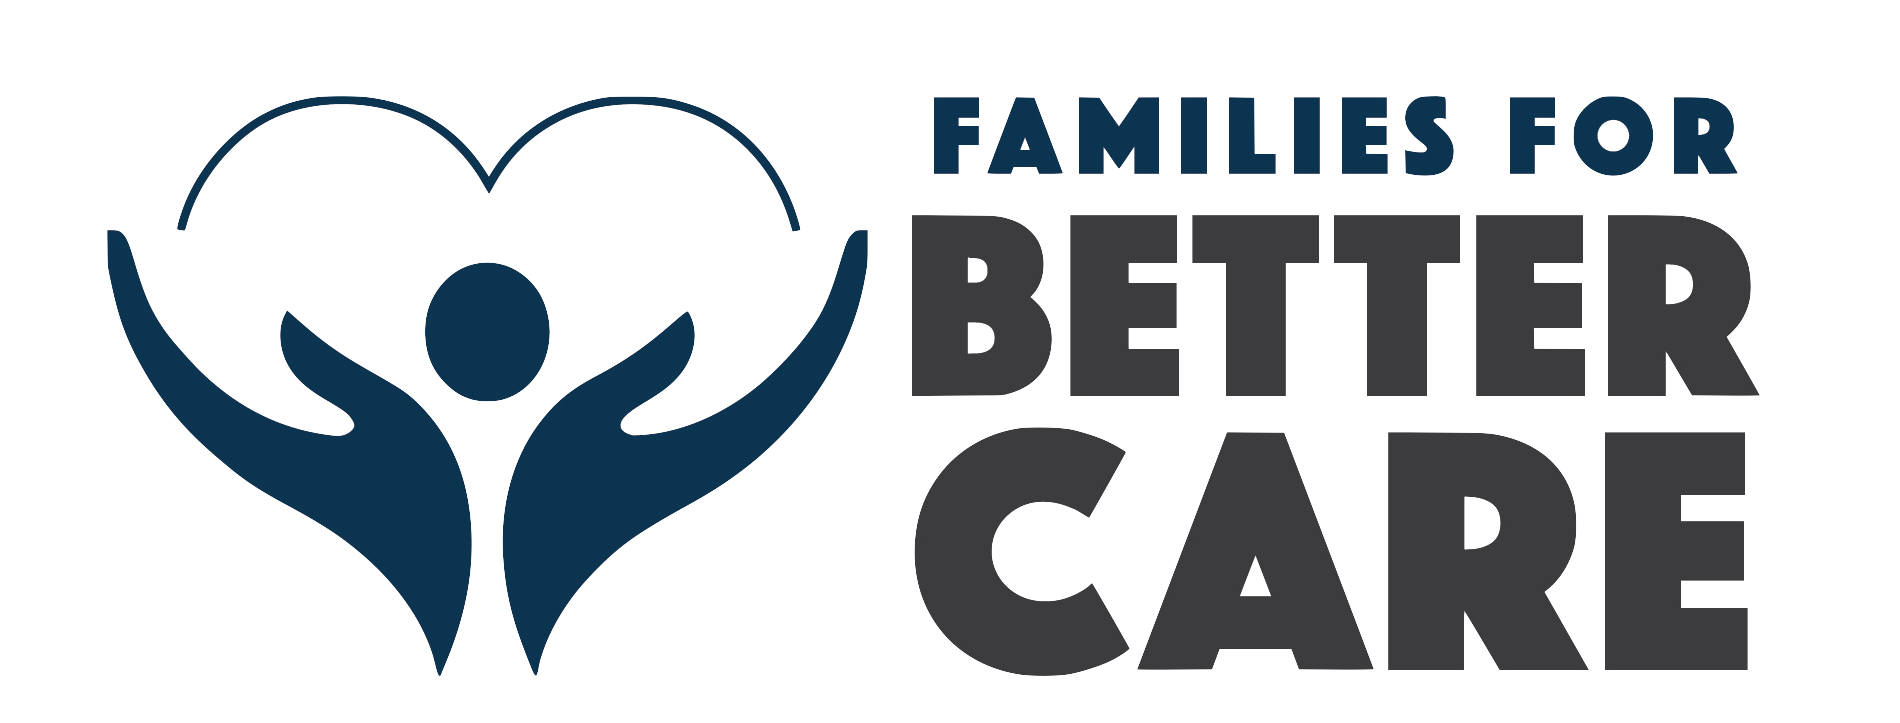 Families for Better Care Submits Comments on Proposed Nursing Home Regulations